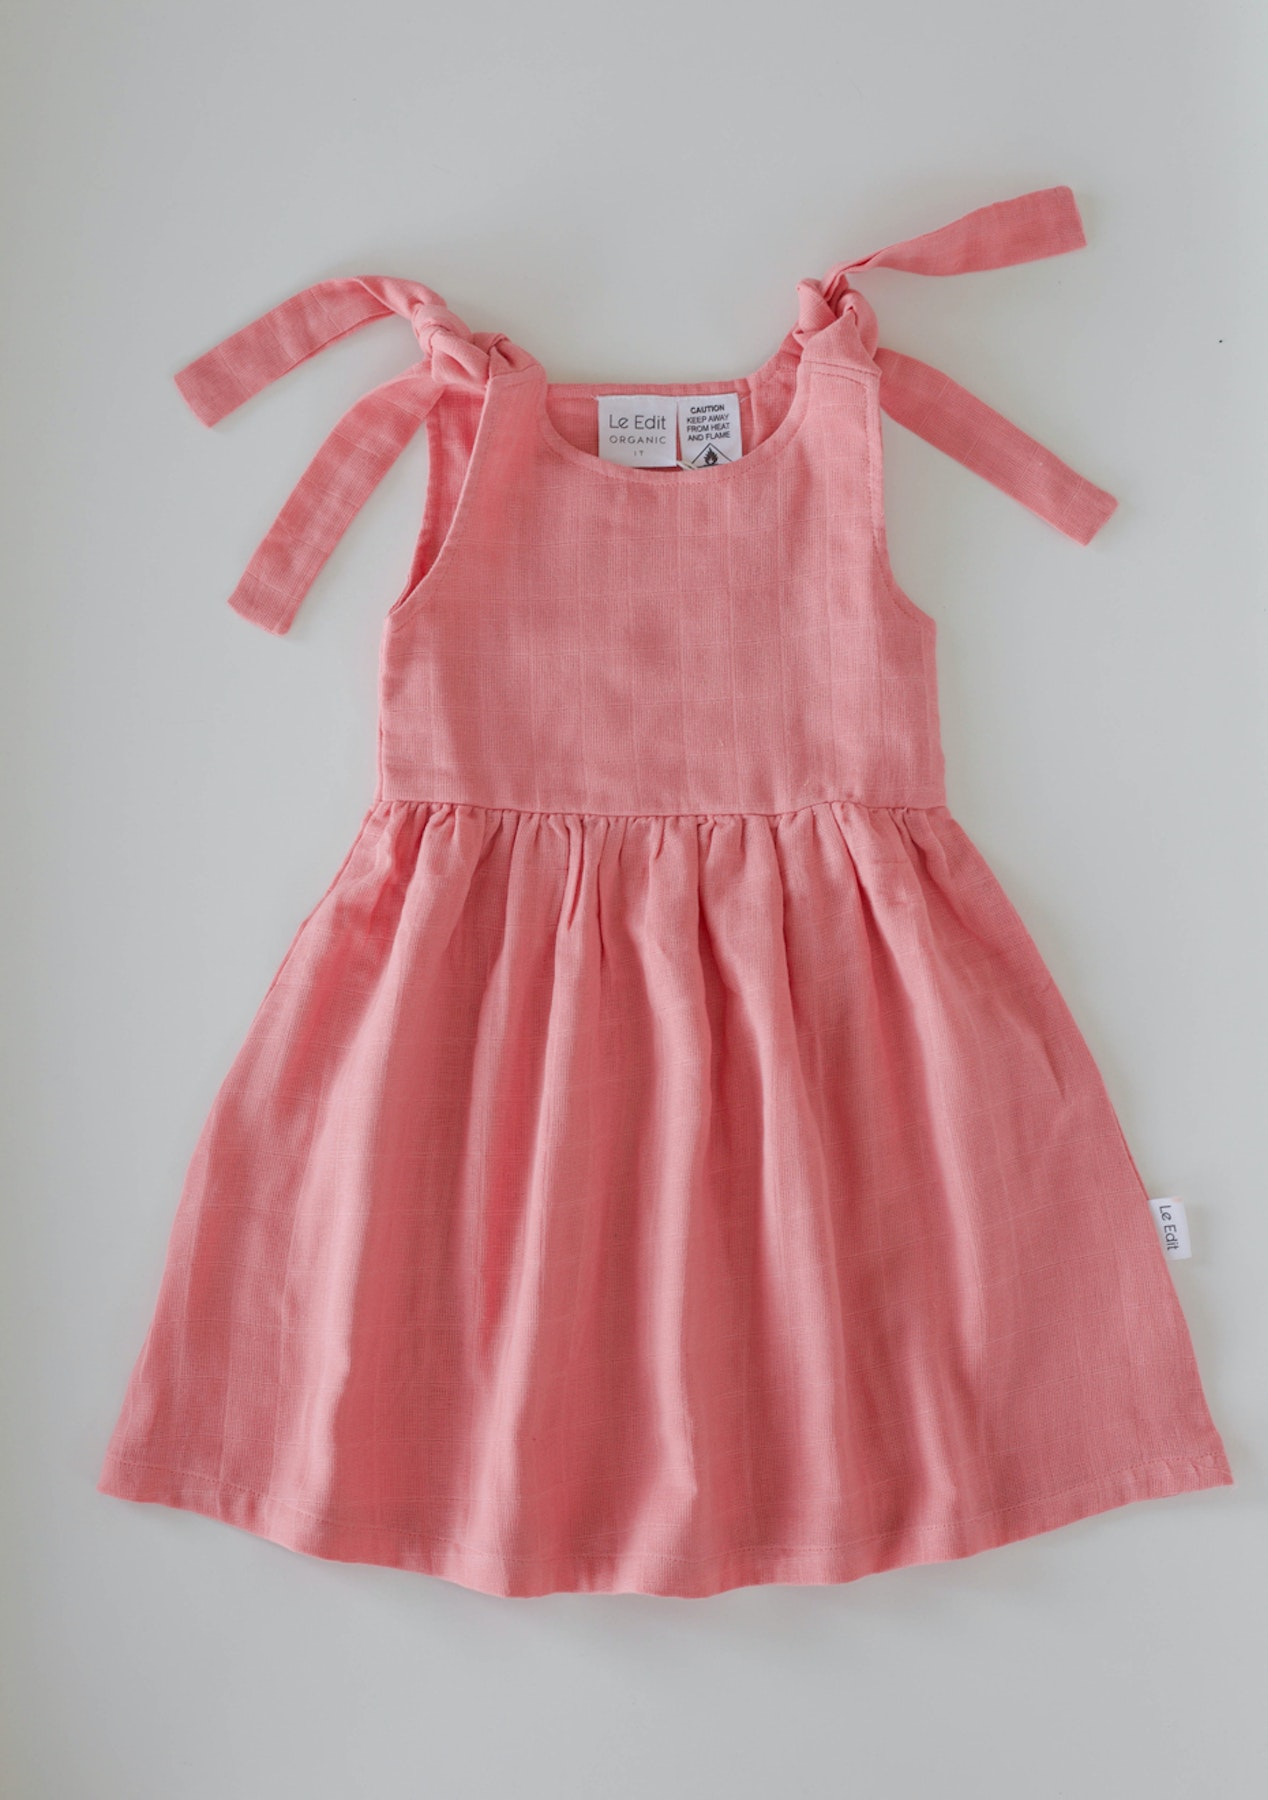 8bc89e8ac9c Le Edit - Simple Seashell Summer Dress - Seashell Pink - Le Edit Baby At  Least 40% off - Onceit